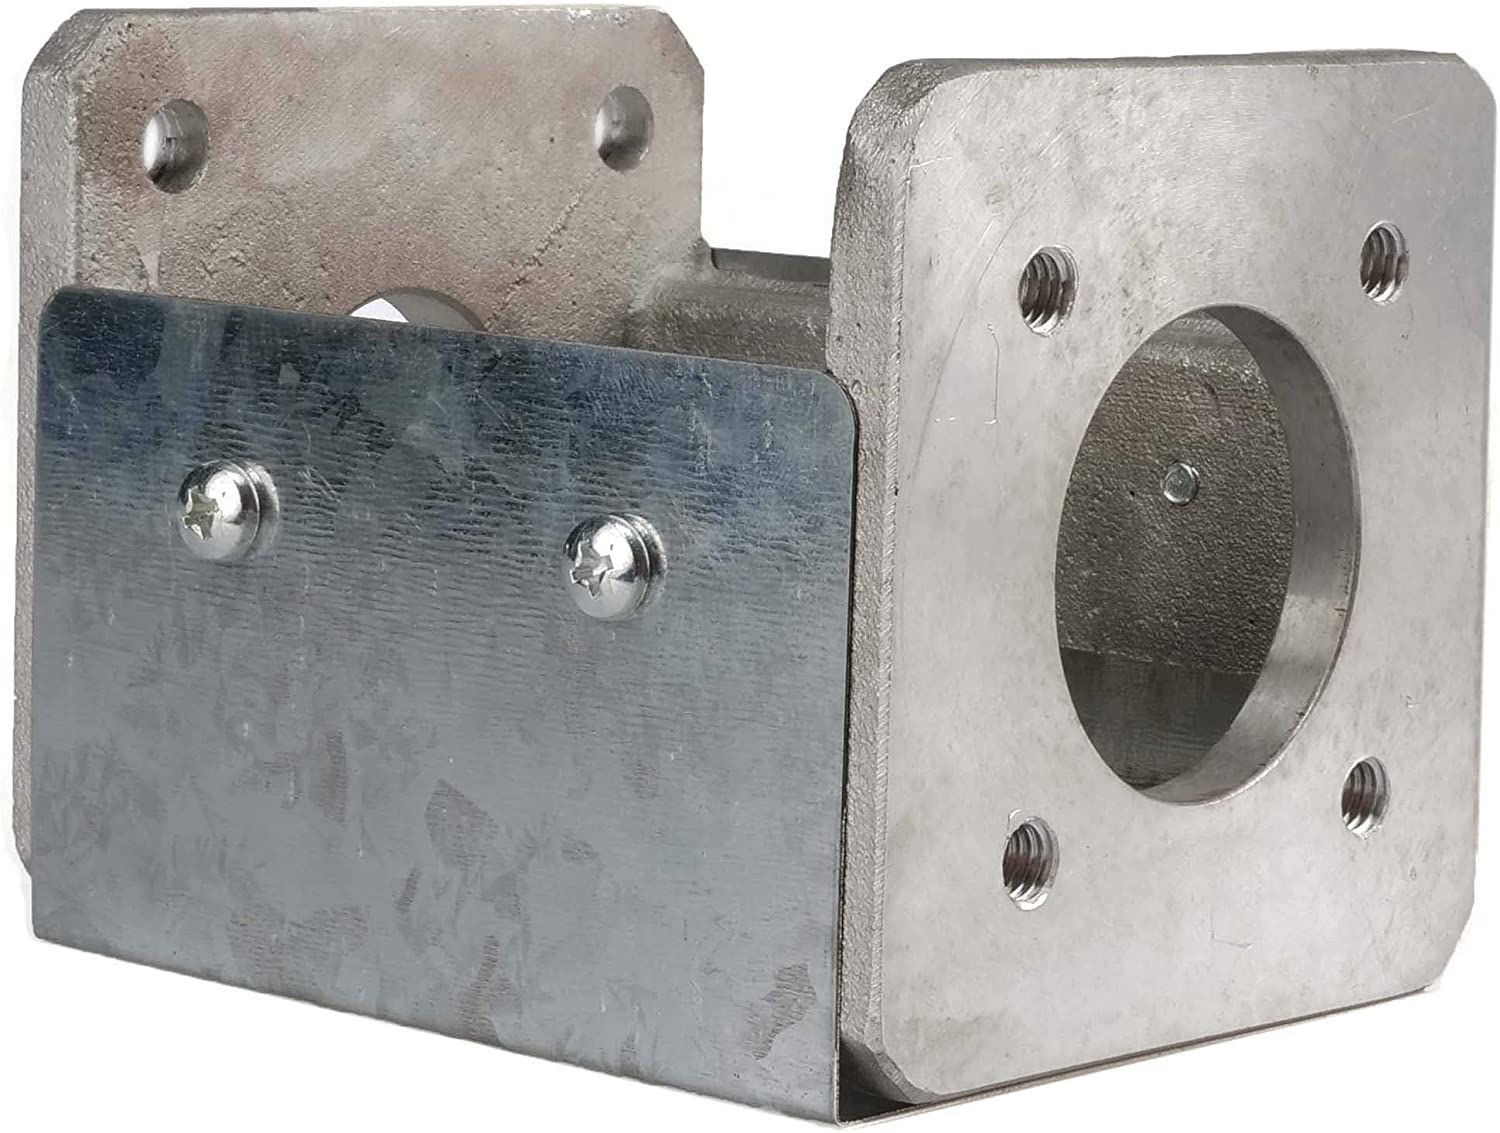 """RuggedMade Hydraulic Log Splitter Pump Mount Bracket for Up to 6.5HP Engines, 4.5"""" Long"""